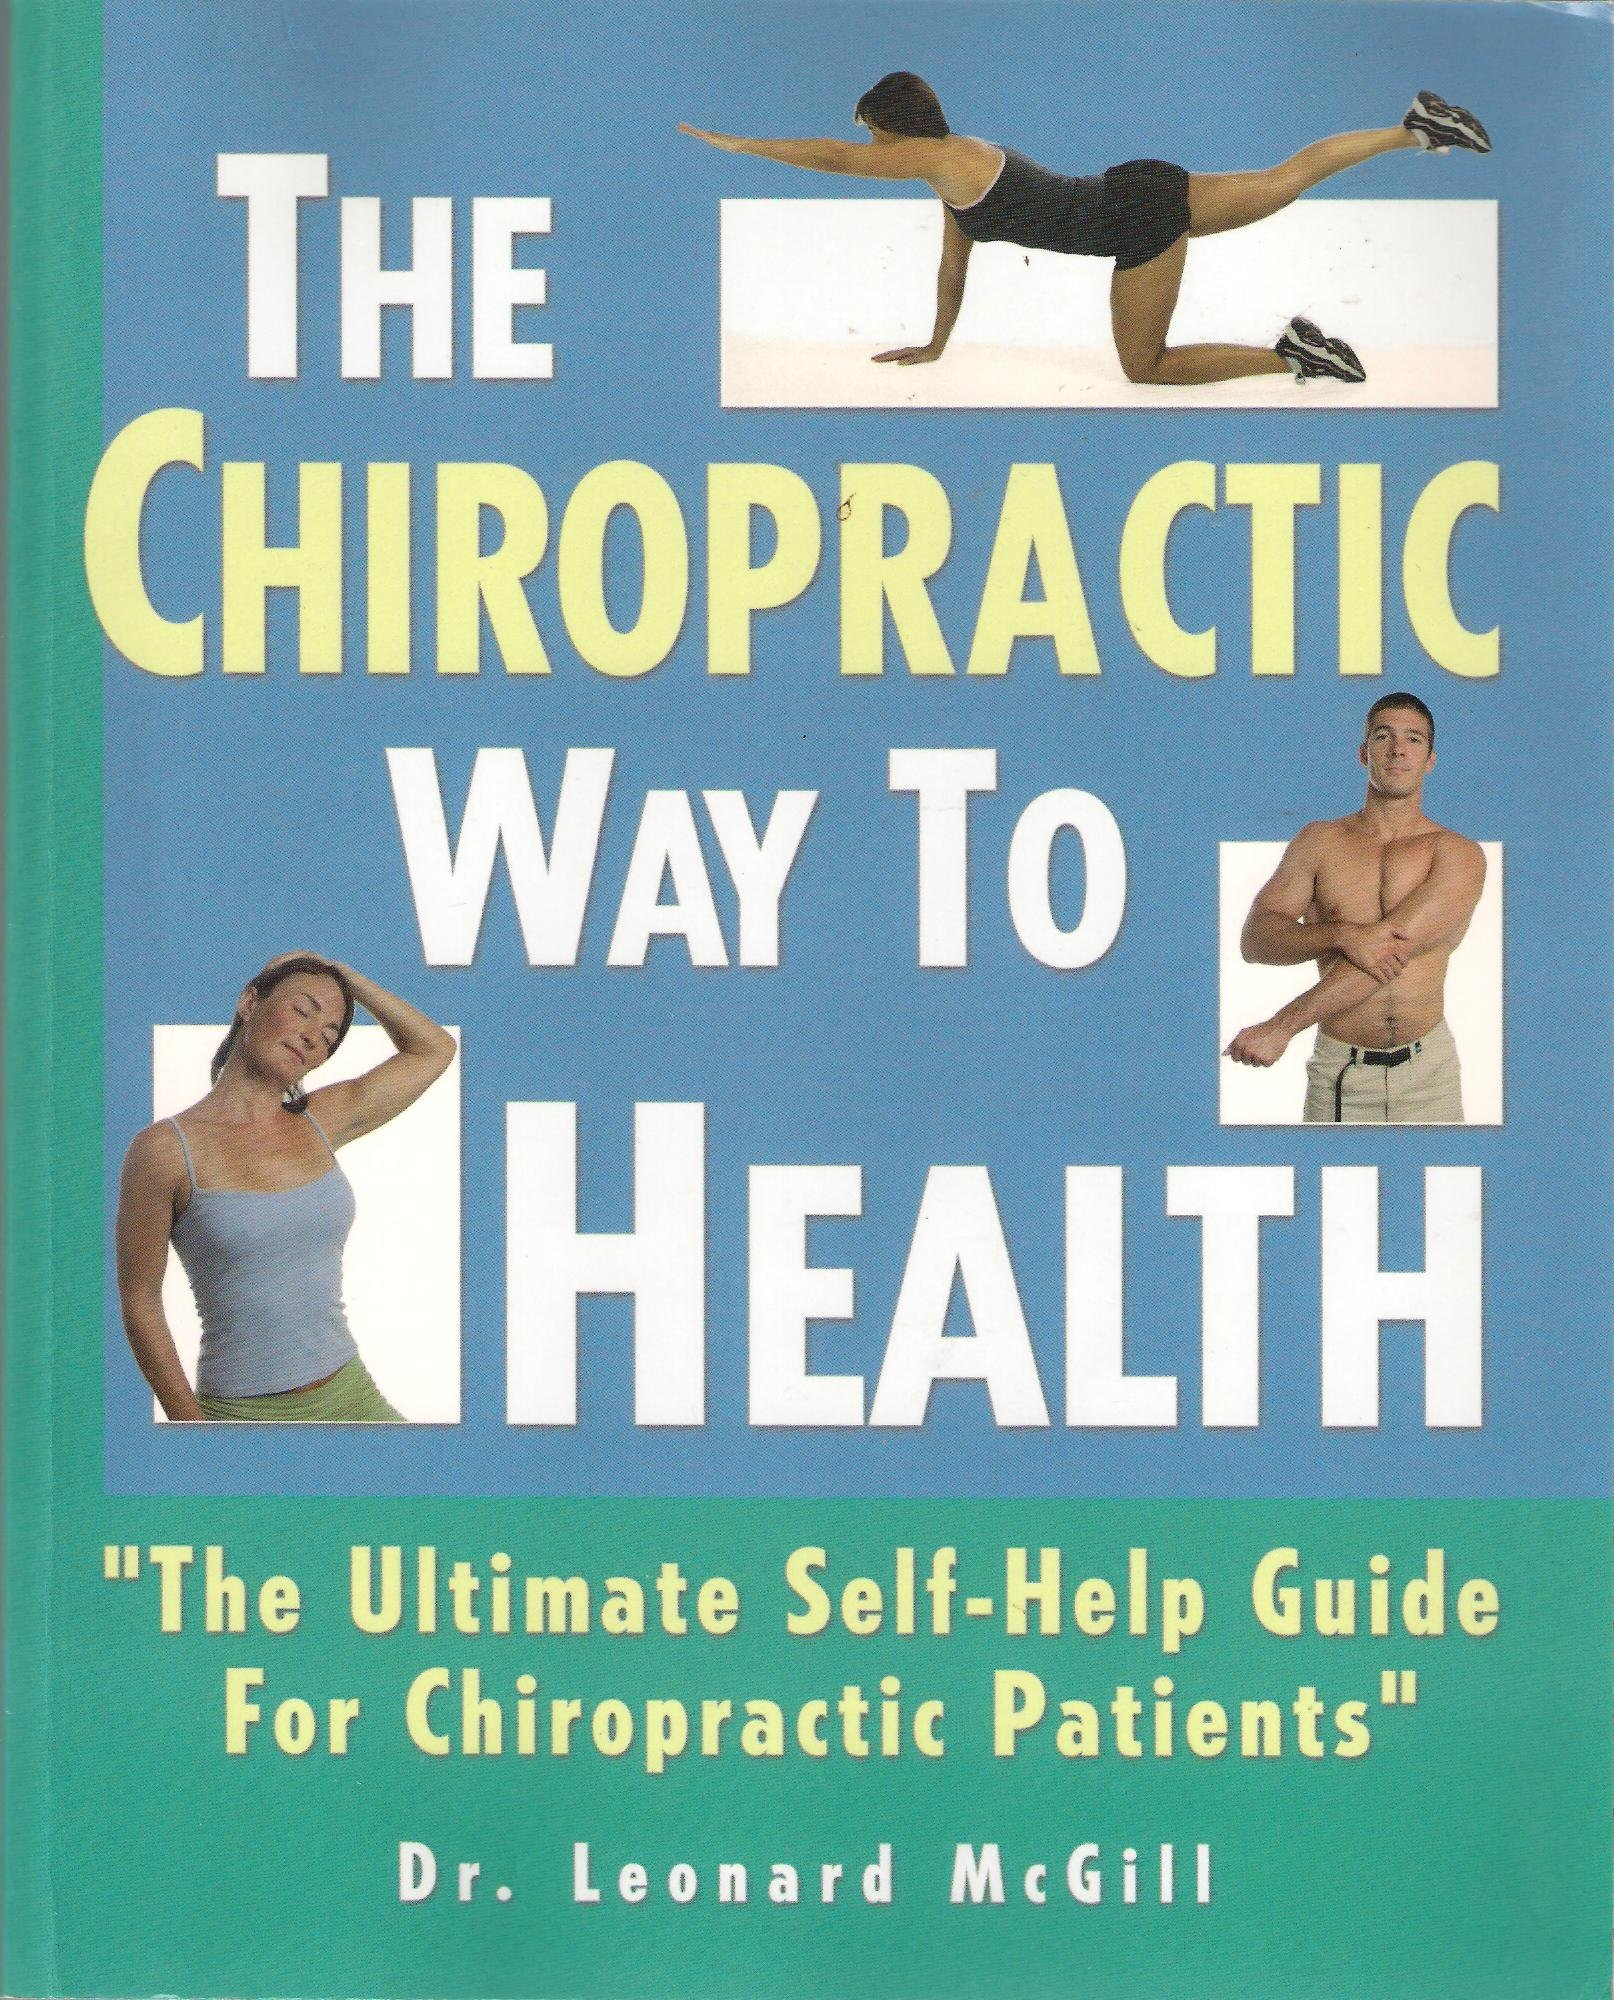 The chiropractic way to health array the chiropractic way to health the ultimate self help guide for rh amazon com fandeluxe Image collections